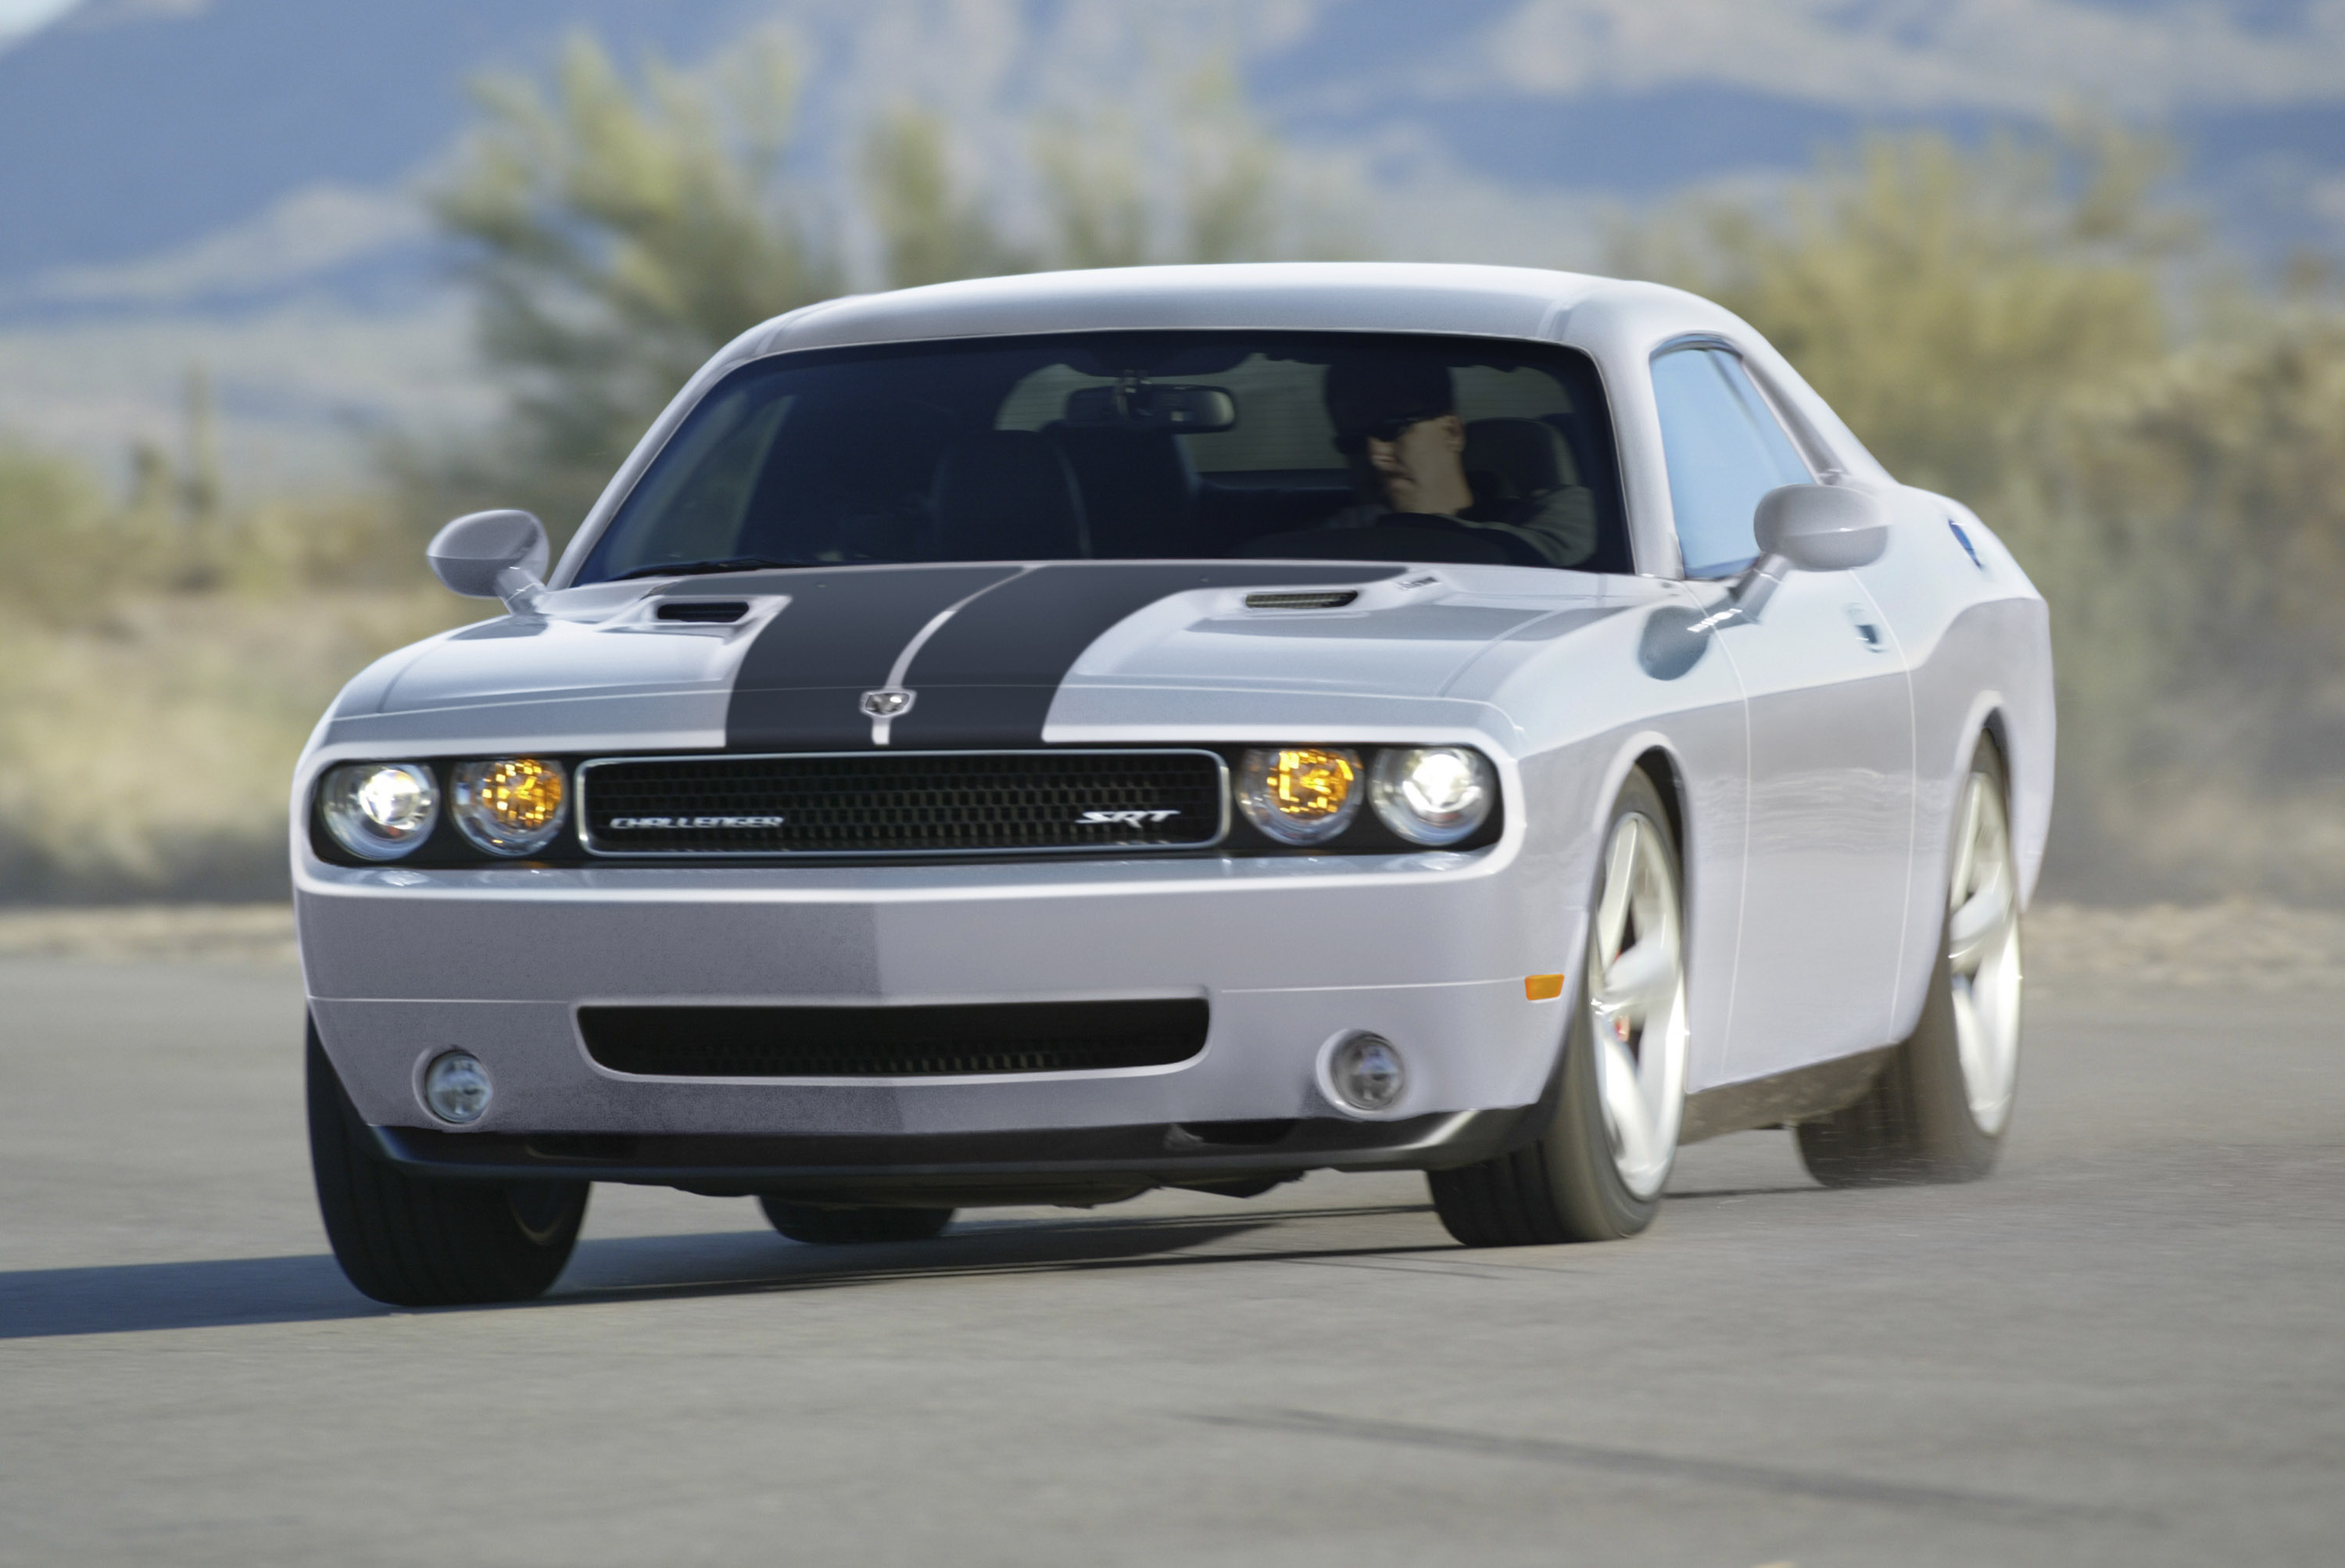 Mopar® Reveals Dodge Challenger Drag Race Package Cars at the 29th ...